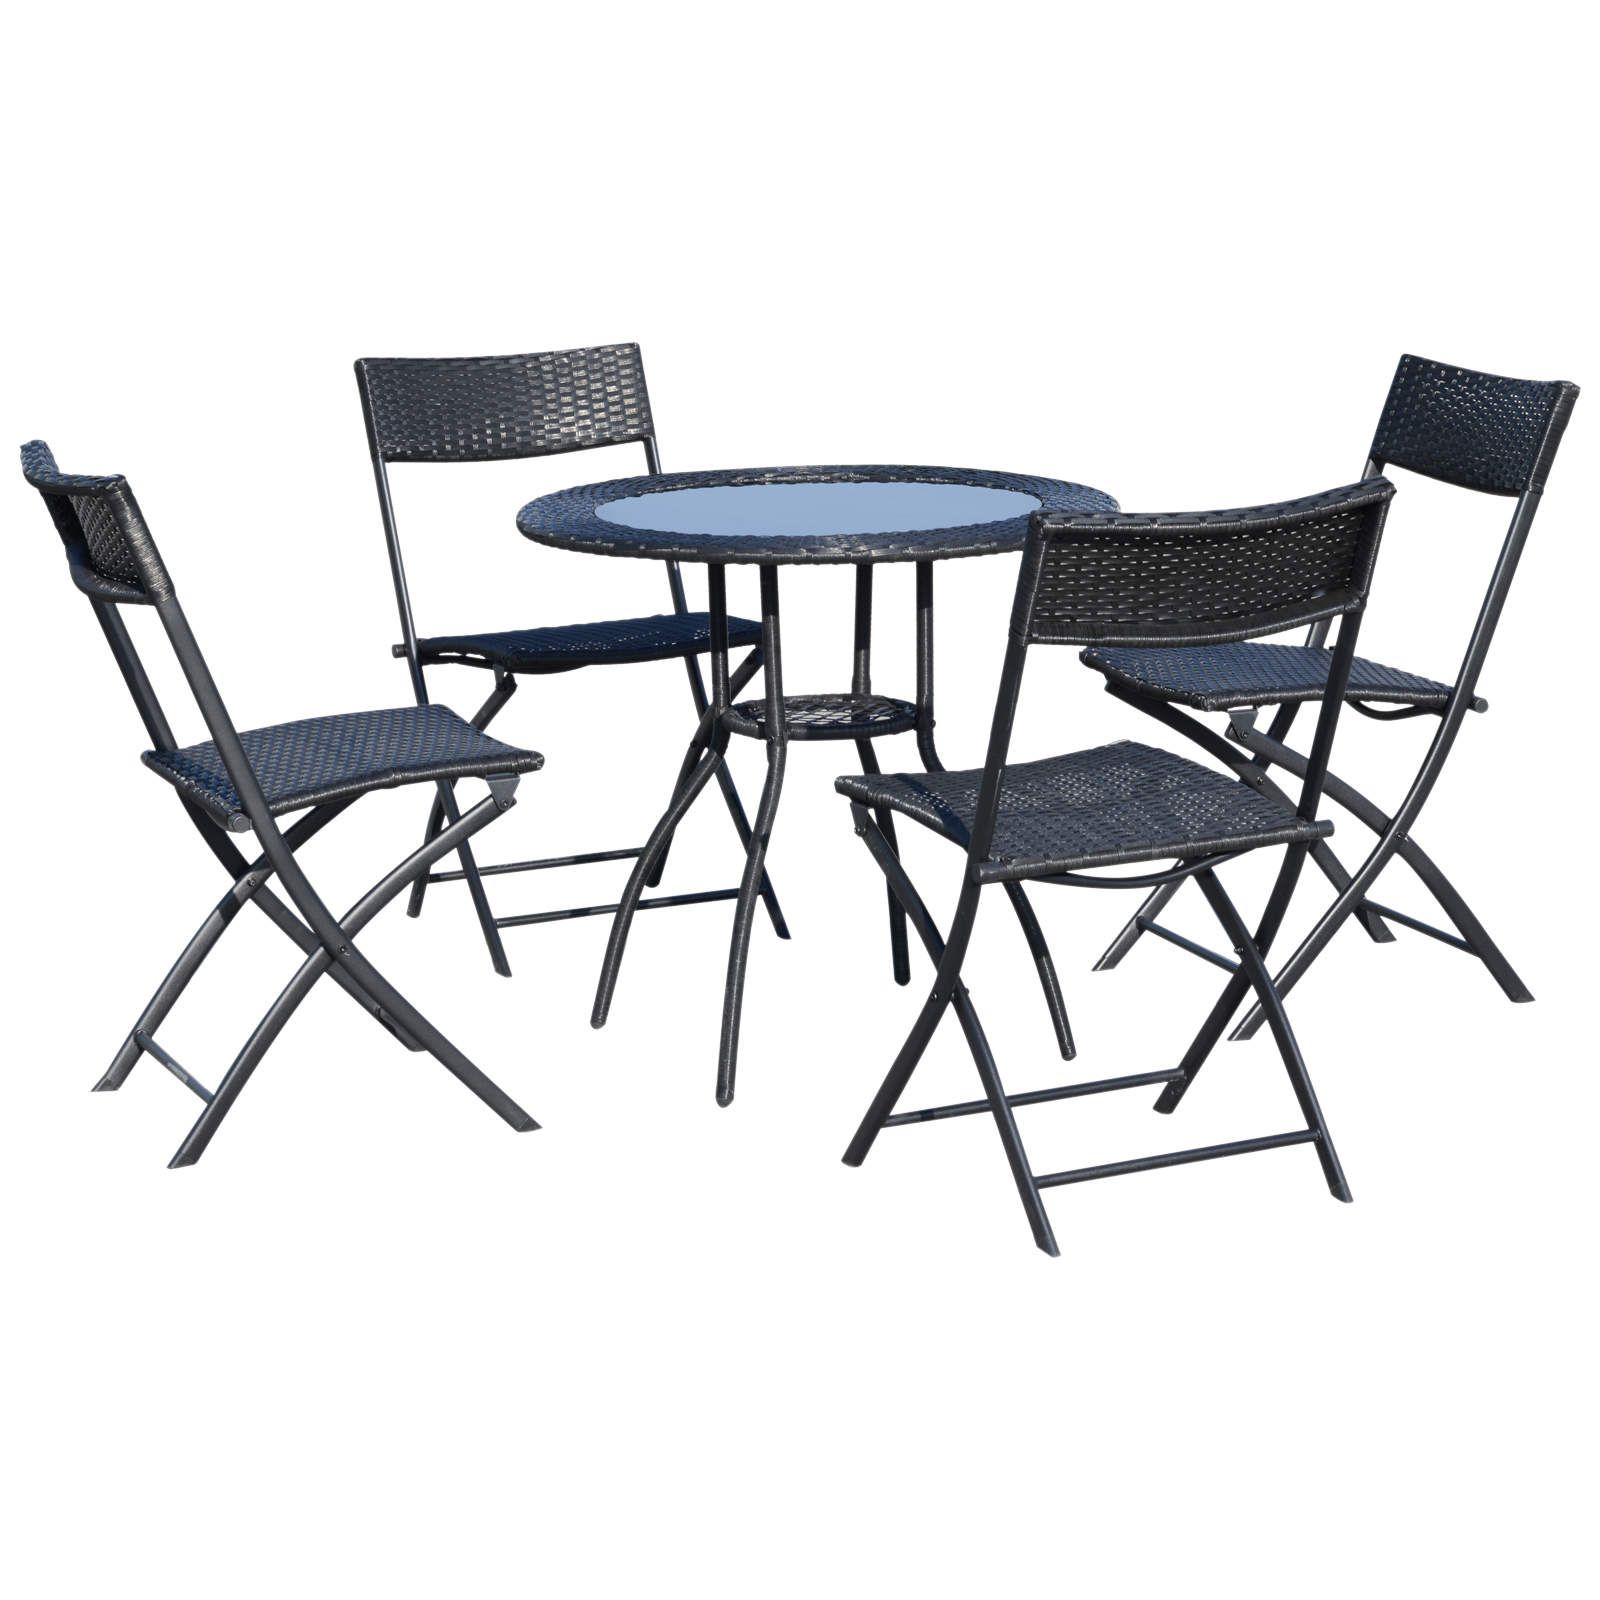 Outsunny 5 Set Garden Furniture 4 Folding Chairs 1 Tempered Glass Coffee Table Rattan